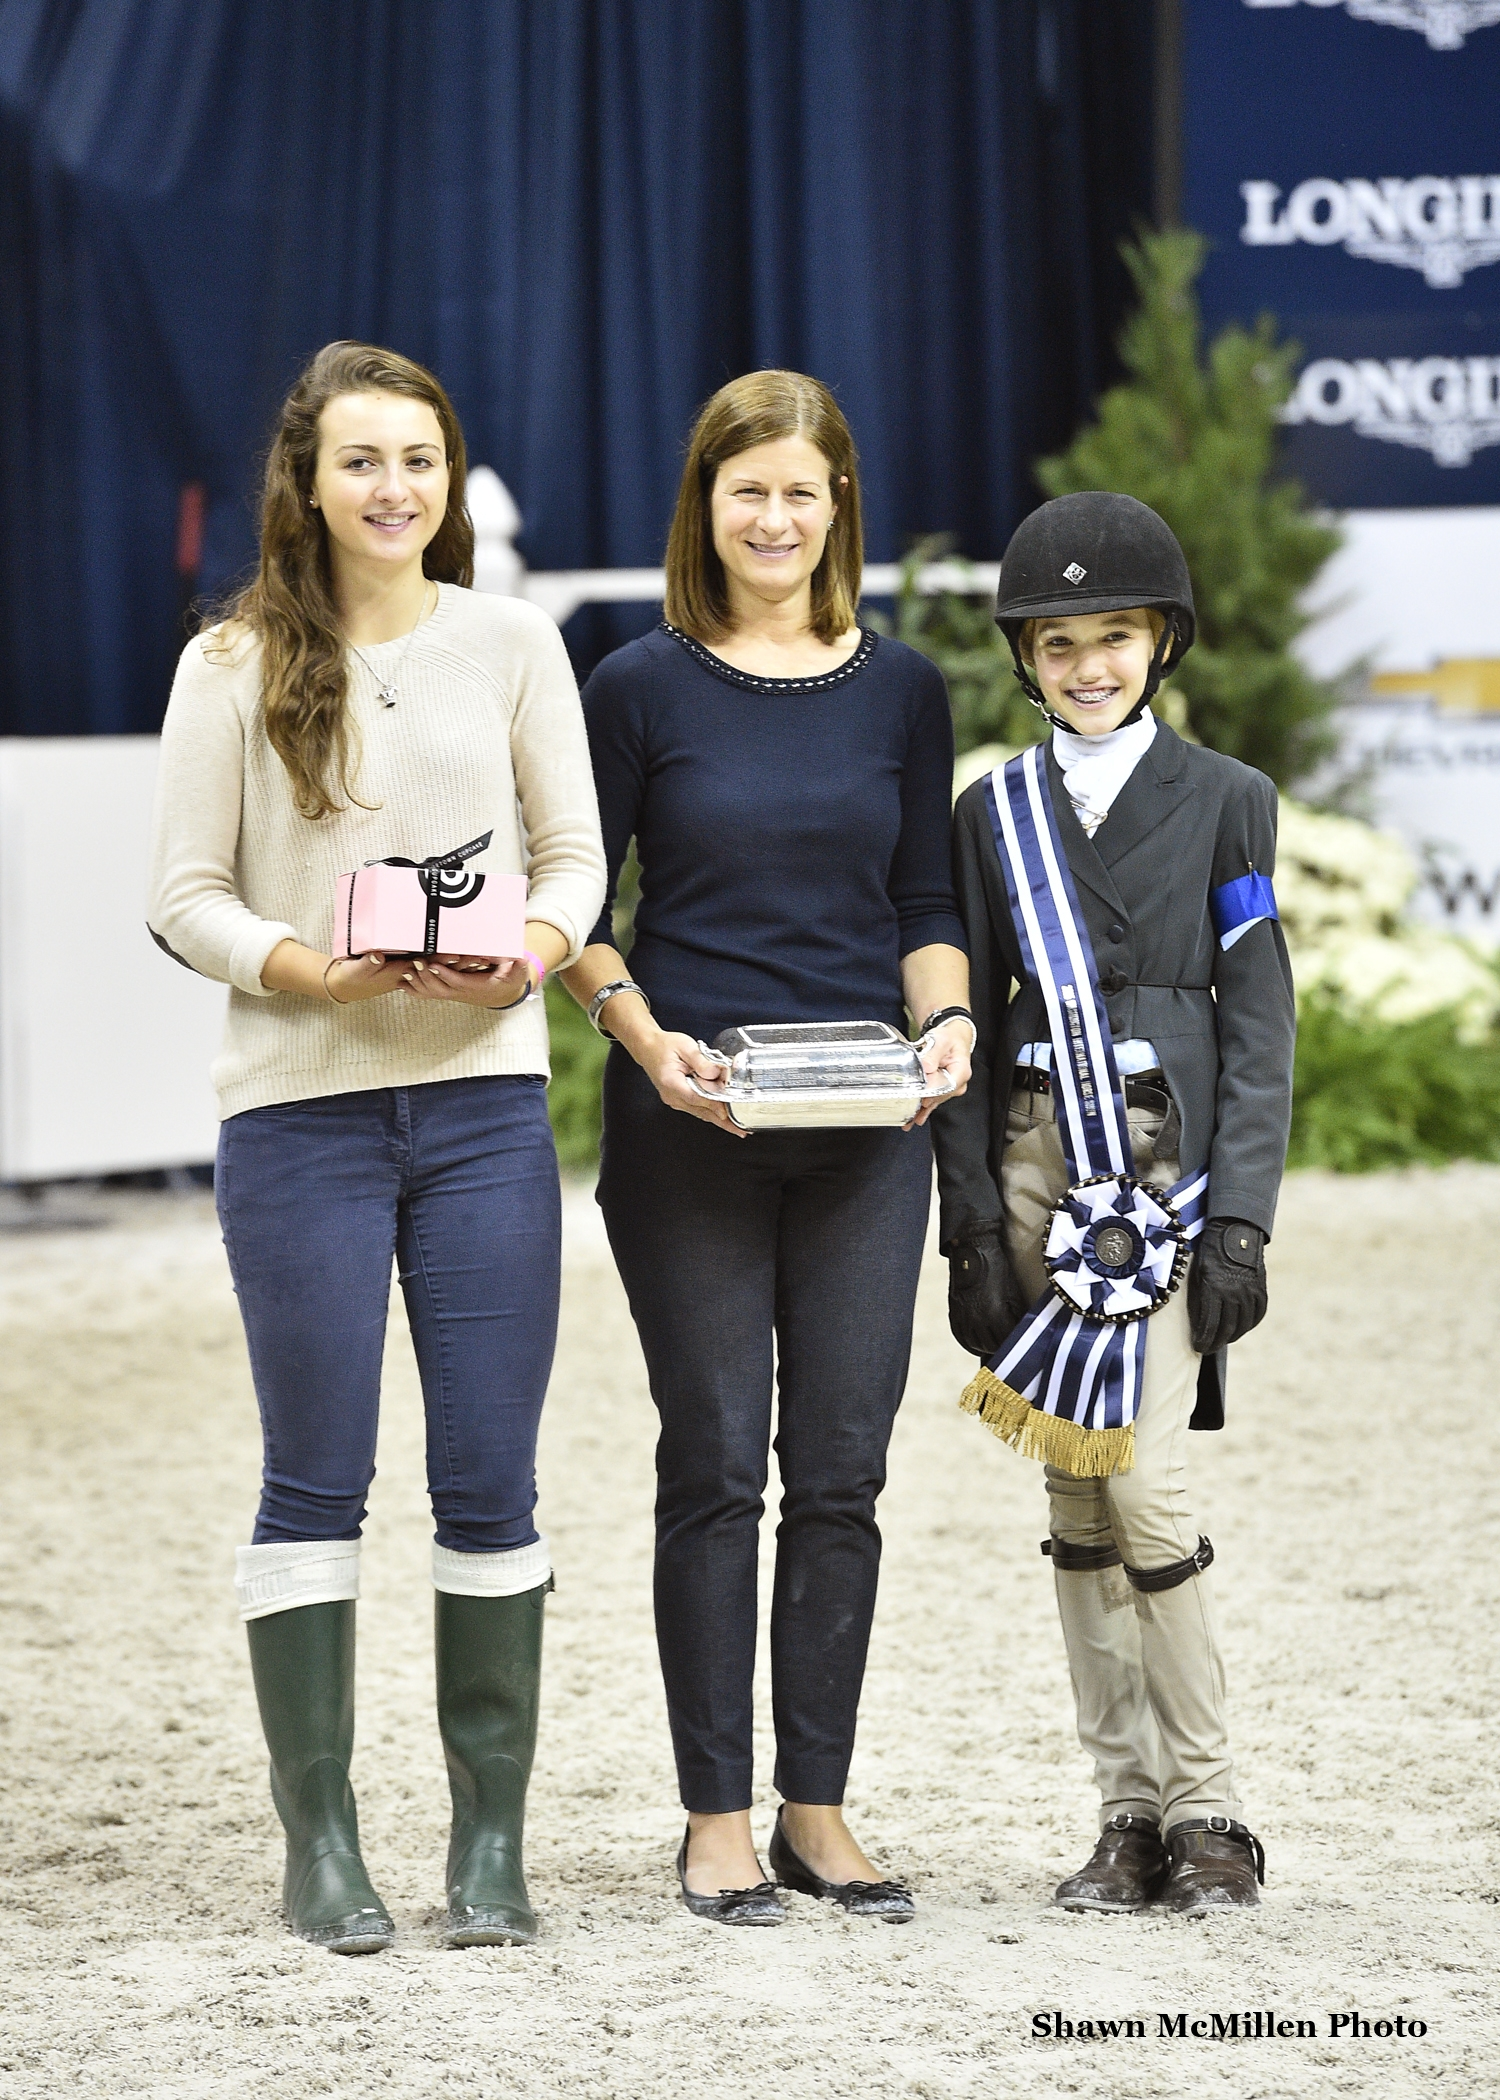 Farah Rizvi accepts the award for Best Child Rider on a Pony with WIHS Youth Ambassador Miriam Dupree and WIHS Executive Director Bridget Love Meehan. <br><b>Photo by <a href='http://www.shawnmcmillen.com/' target='_blank'>Shawn McMillen Photography</a></b>